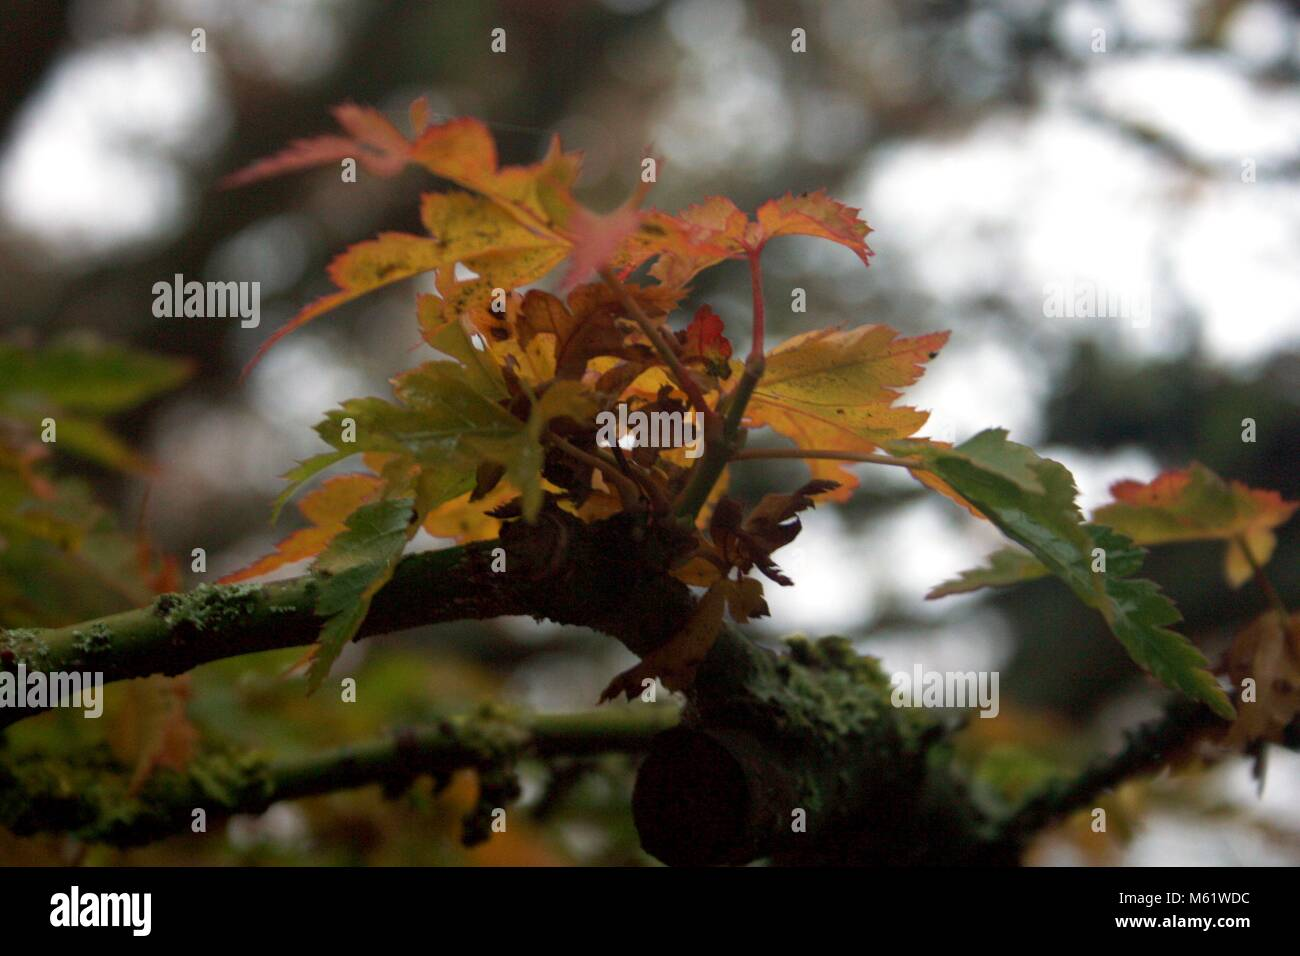 leaves in the autumn - Stock Image